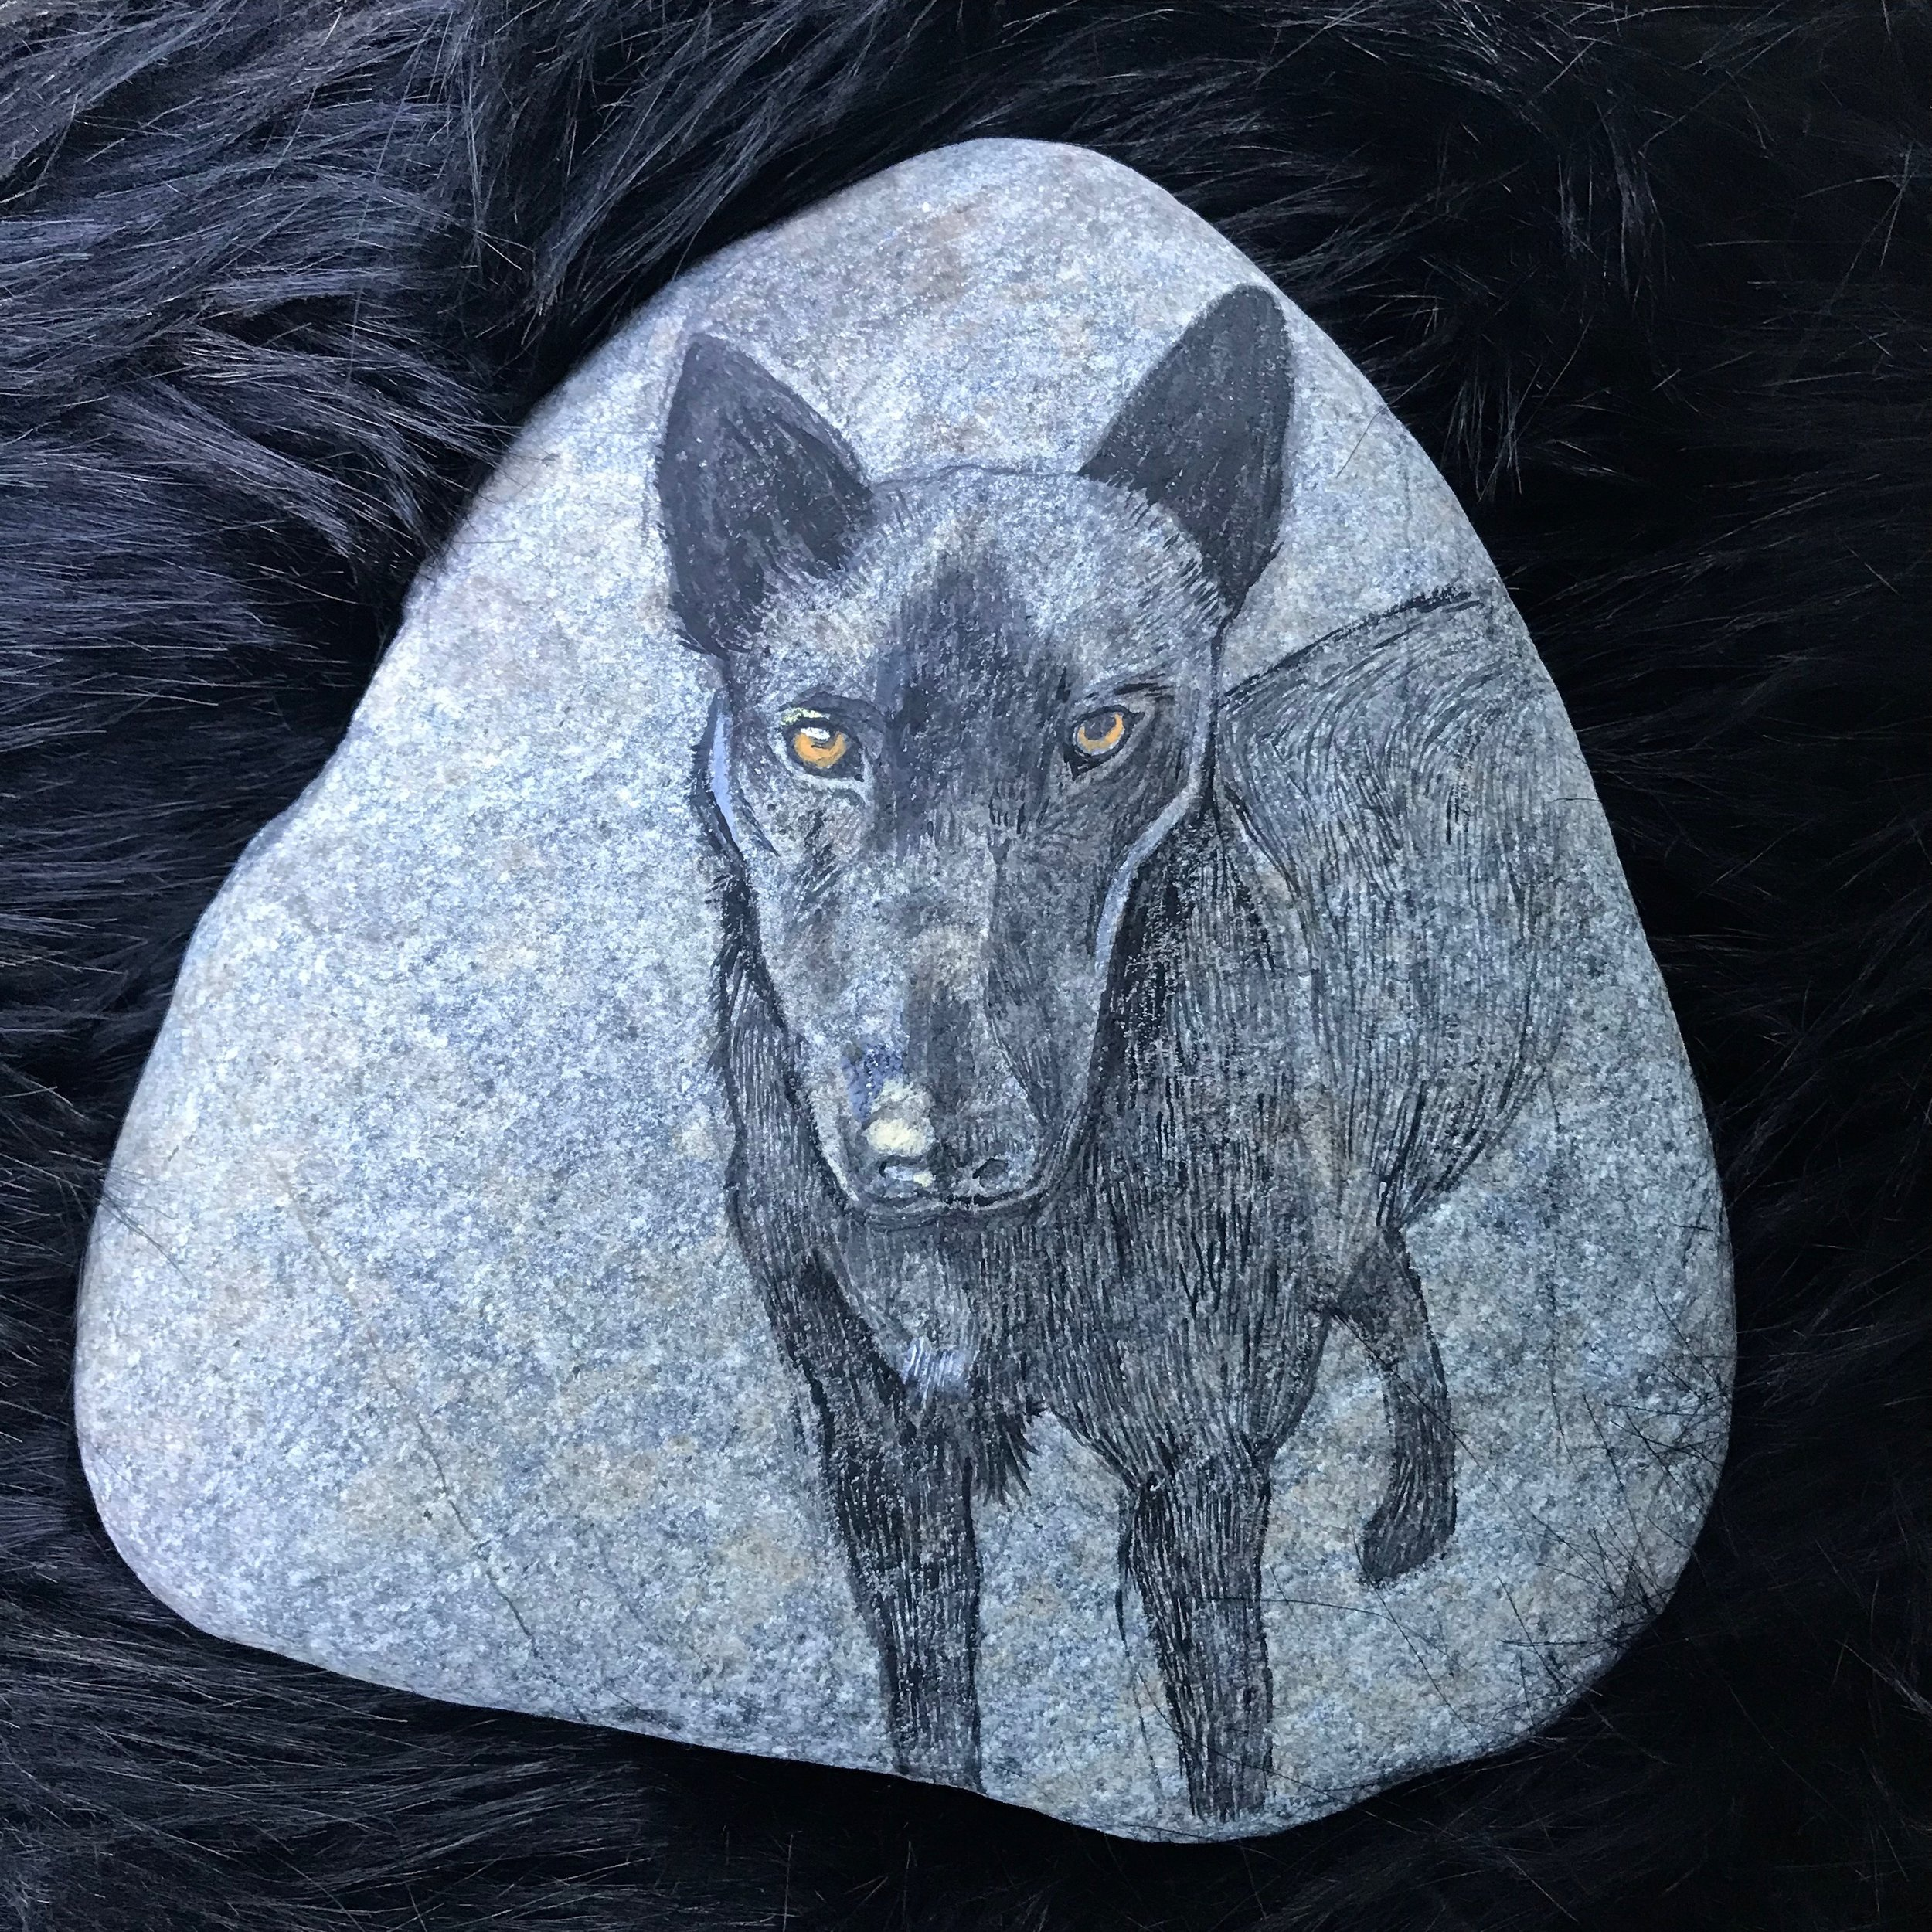 Day 362. Dog on a Rock